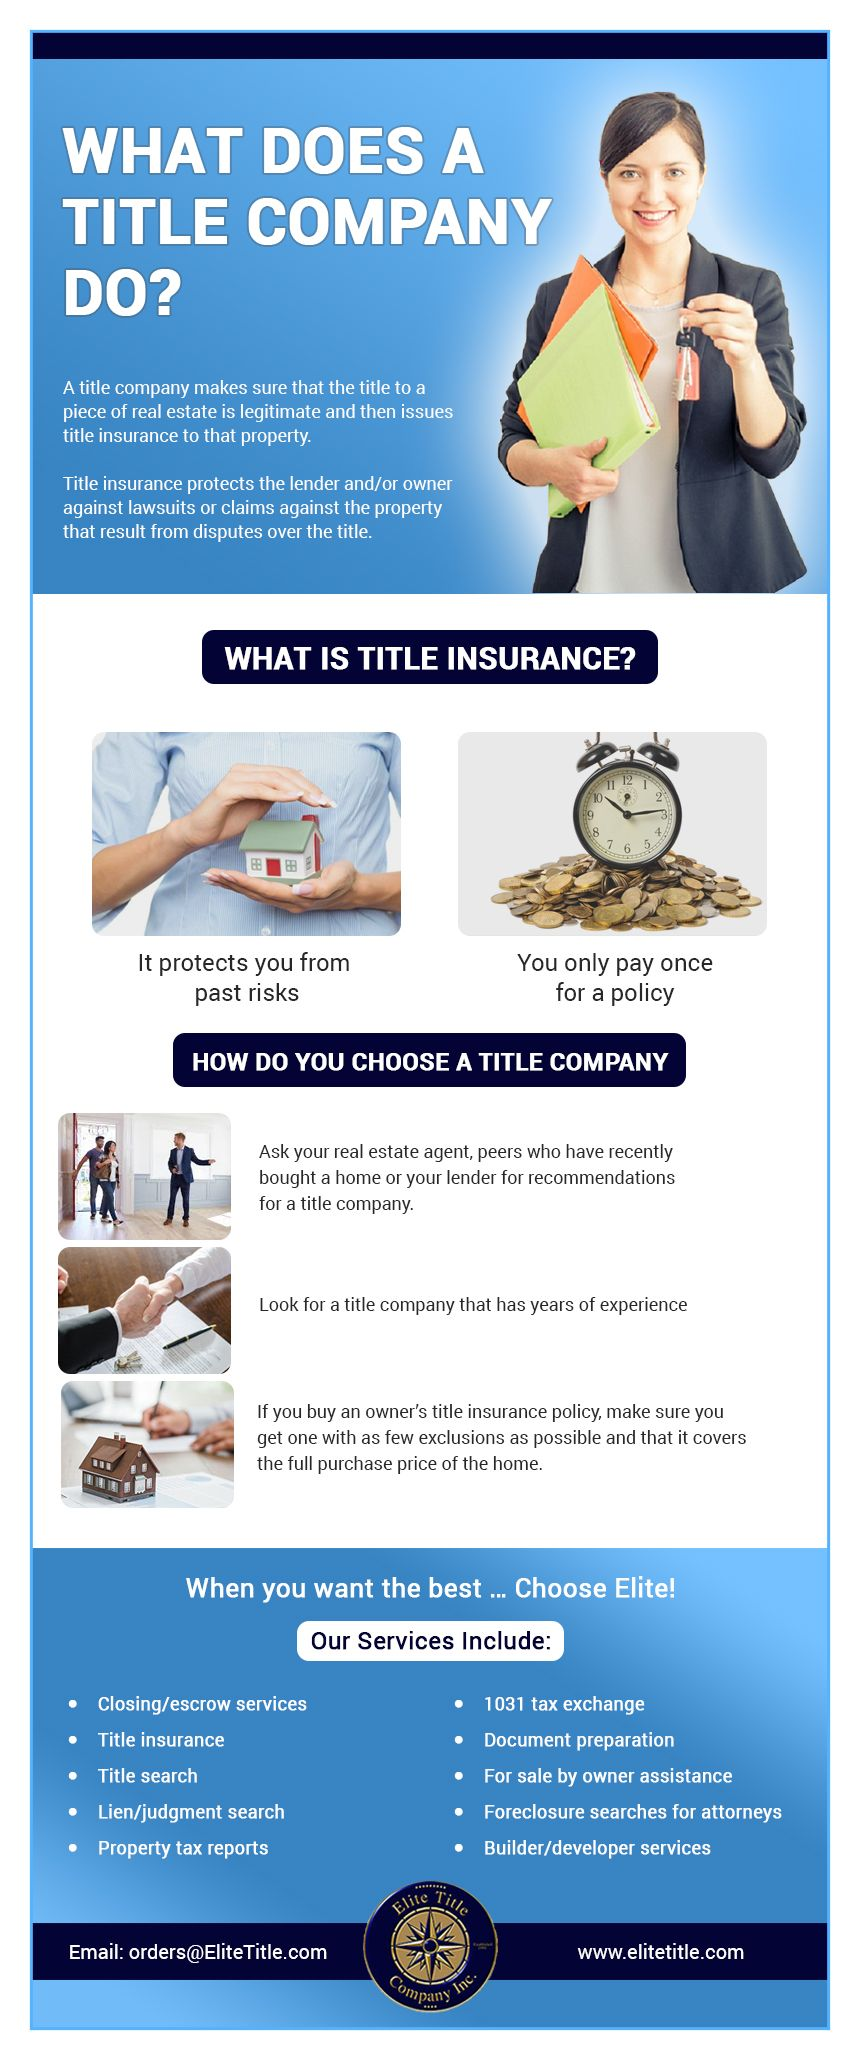 Title Insurance Protects You From Facing A Financial Loss Mostly